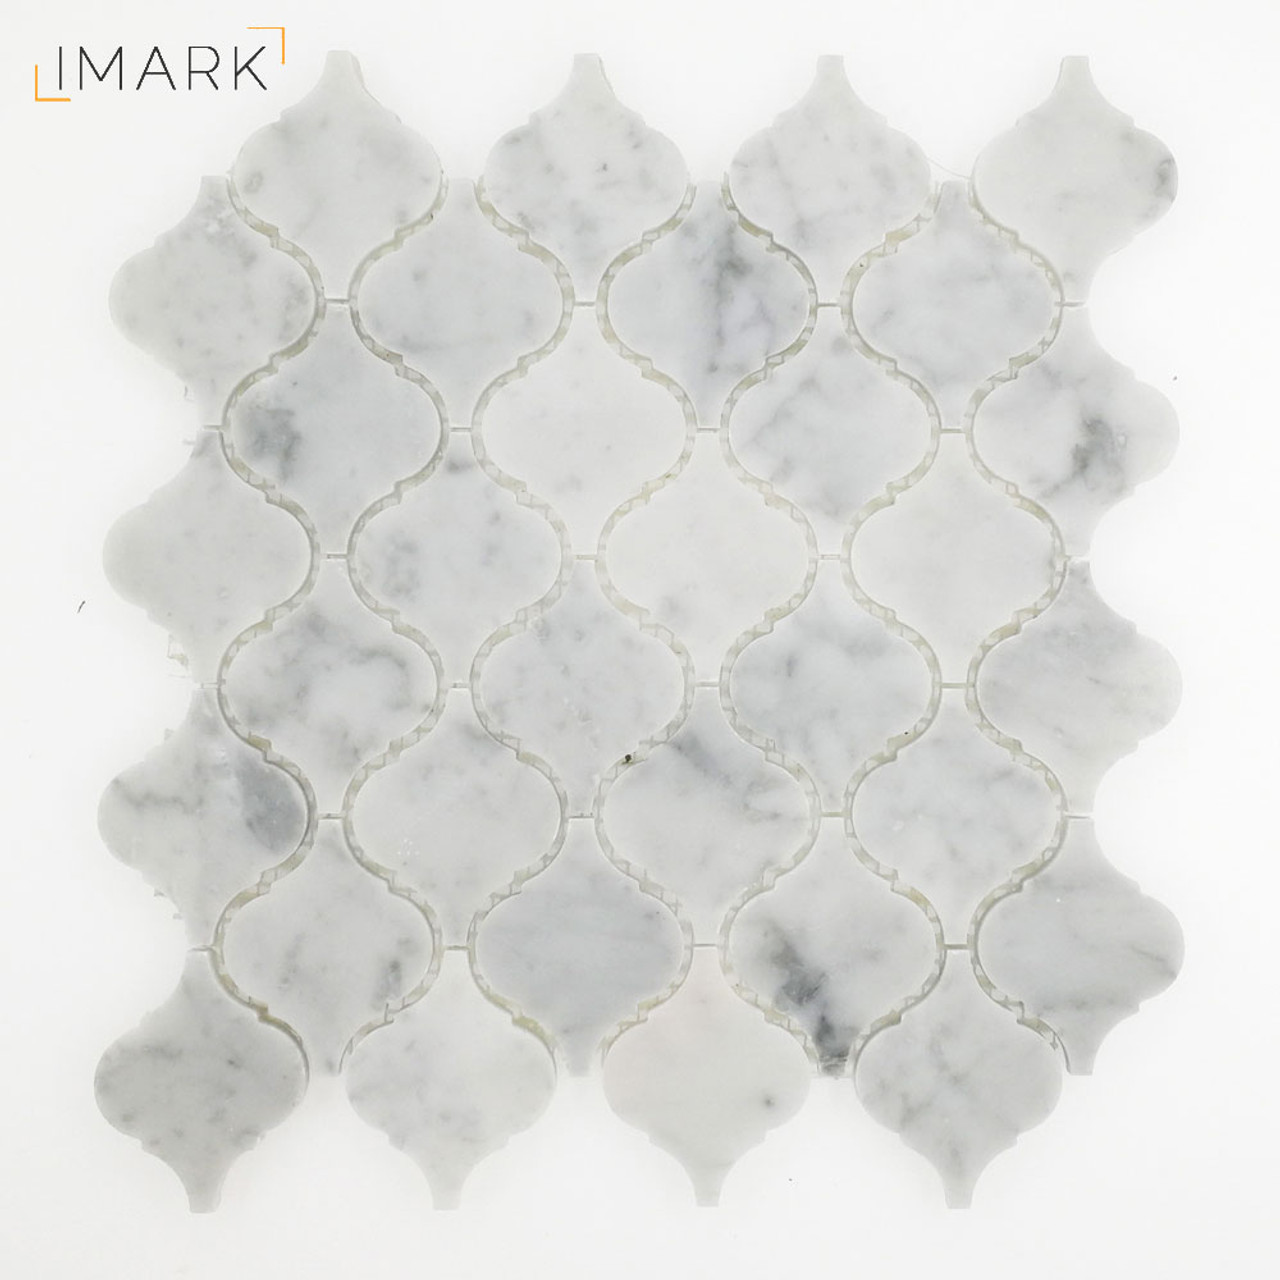 Arabesque Marble Tile Carrara White Marble Lantern Arabesque Mosaic Tile Polished Or